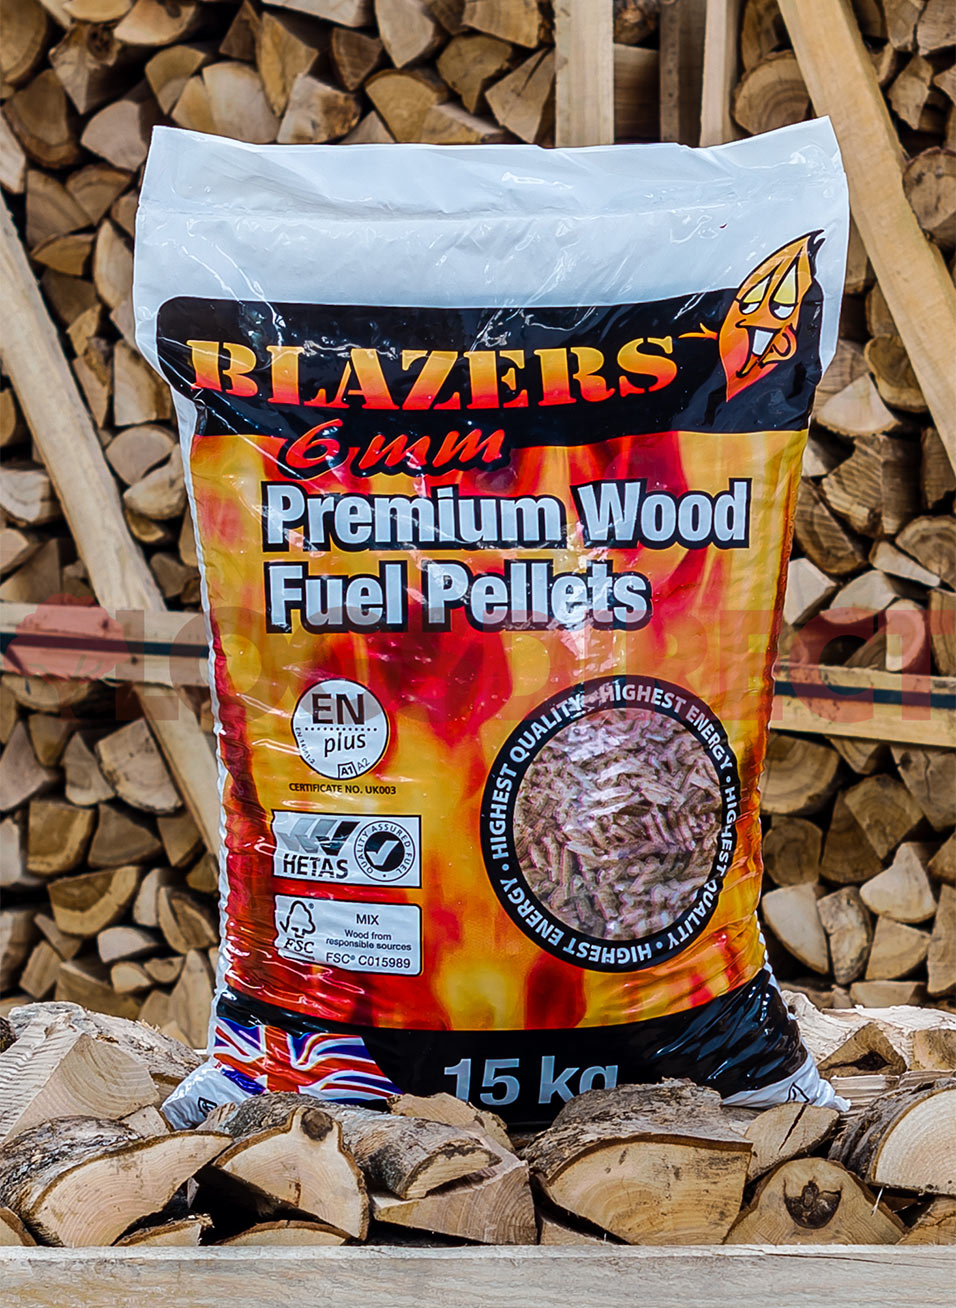 Wood Pellets For Heating ~ Wood pellets handy kg bag of blazers